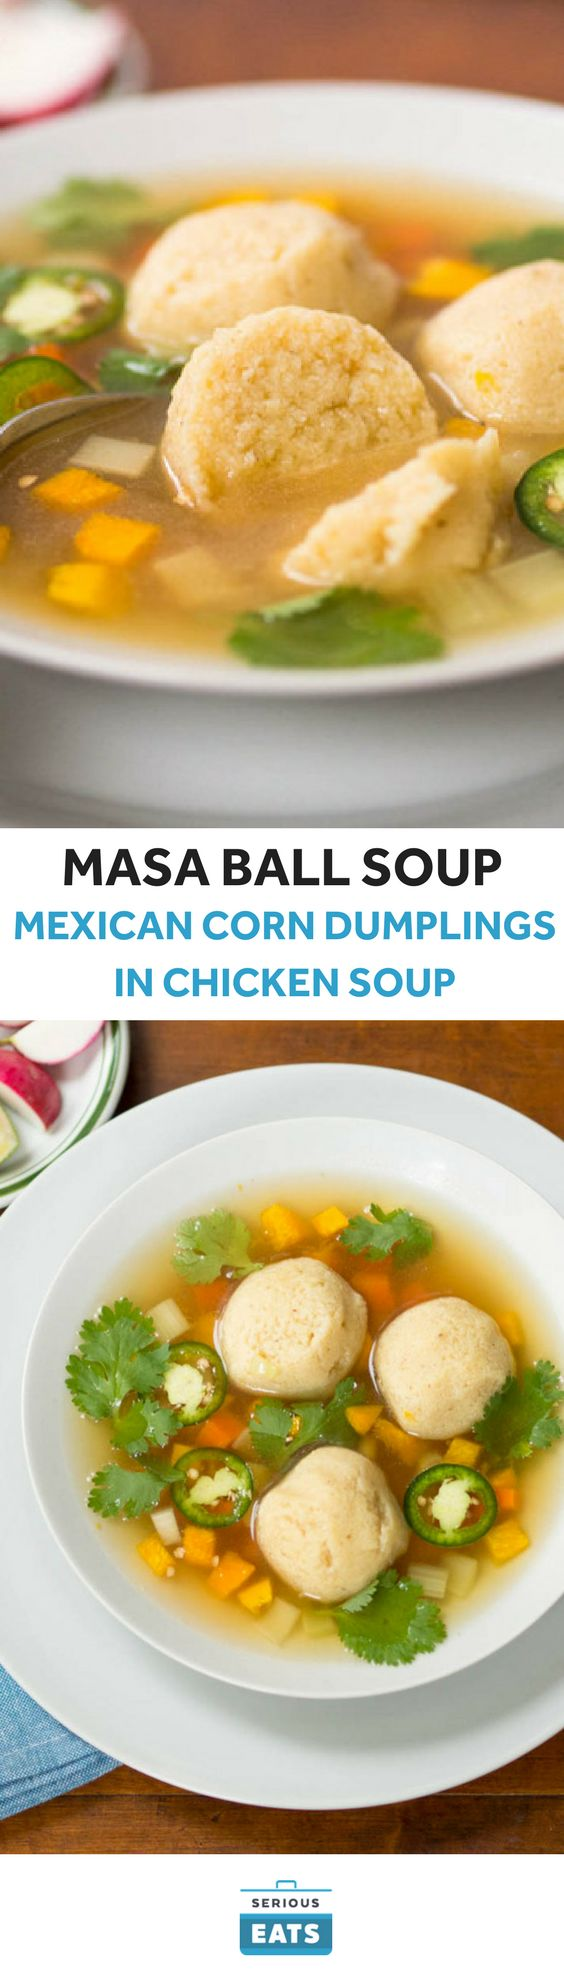 This recipe might have been inspired by a pun, but the taste is no gimmick. We give the dumplings a tamale-like flavor by replacing the matzo meal with masa harina and the schmaltz with lard. To keep the Mexican flavor going we make the chicken broth the balls are served in with jalapeño, lime juice, and cilantro.